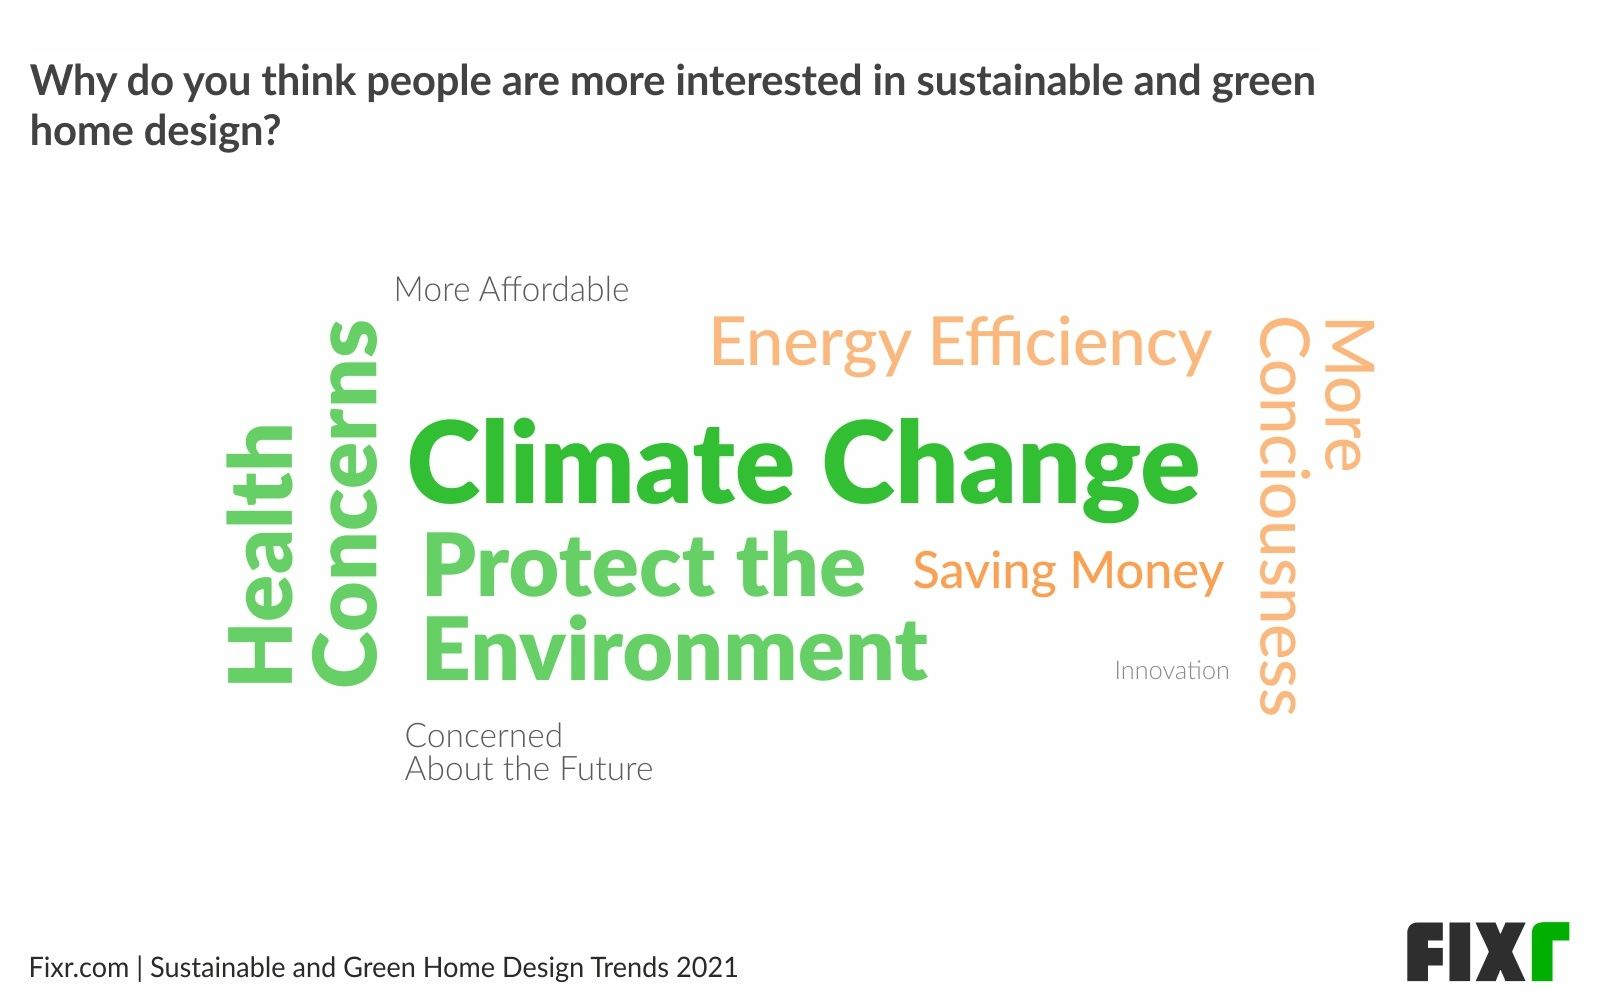 Climate Change Tops the List of Reasons for Wanting a Sustainable and Green Home in 2021